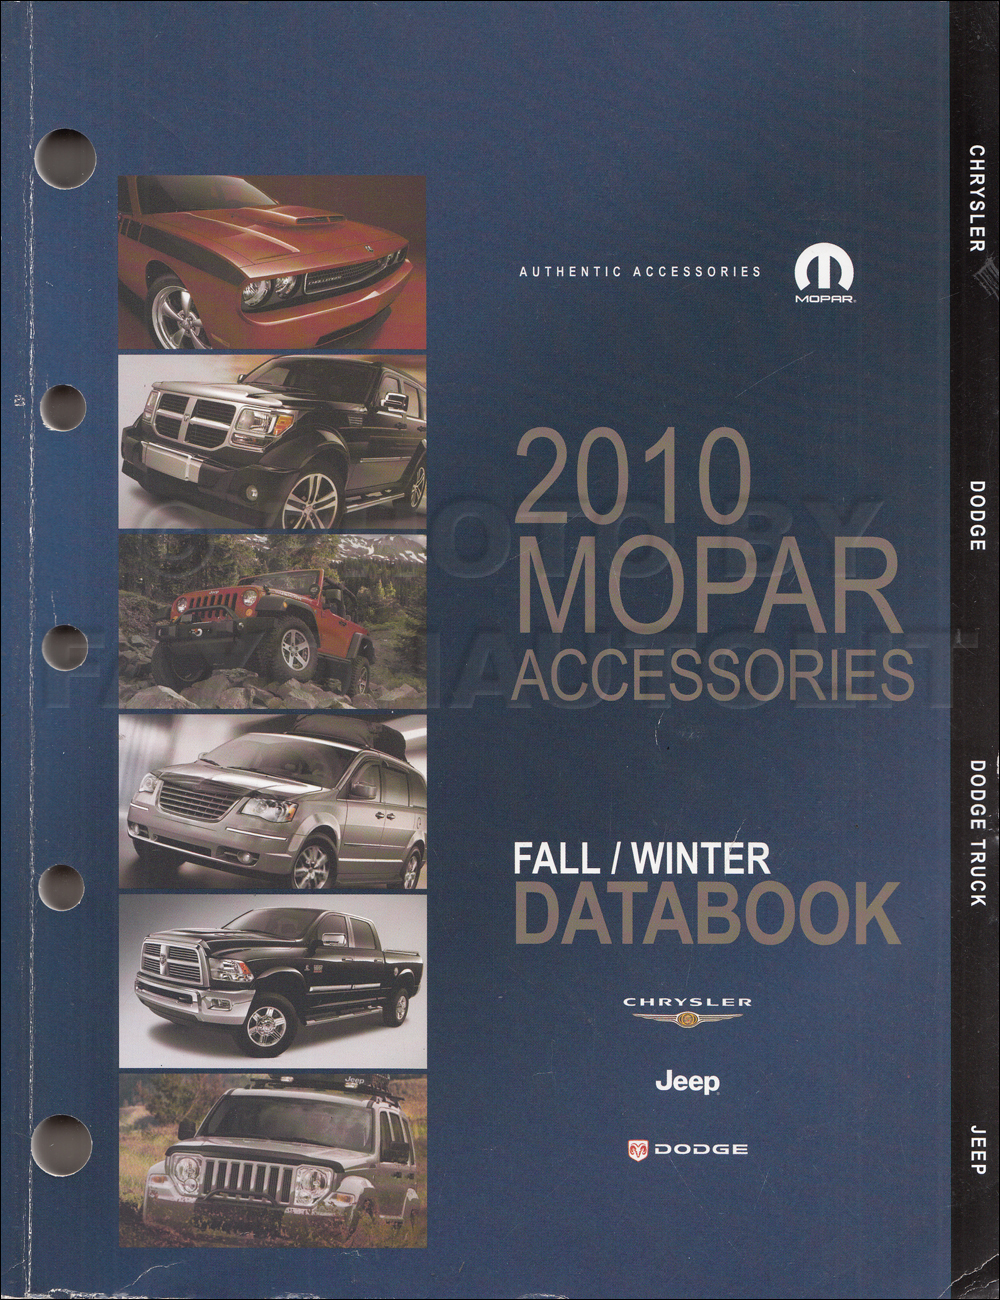 2010 MoPar Accessories Databook Original Fall/Winter